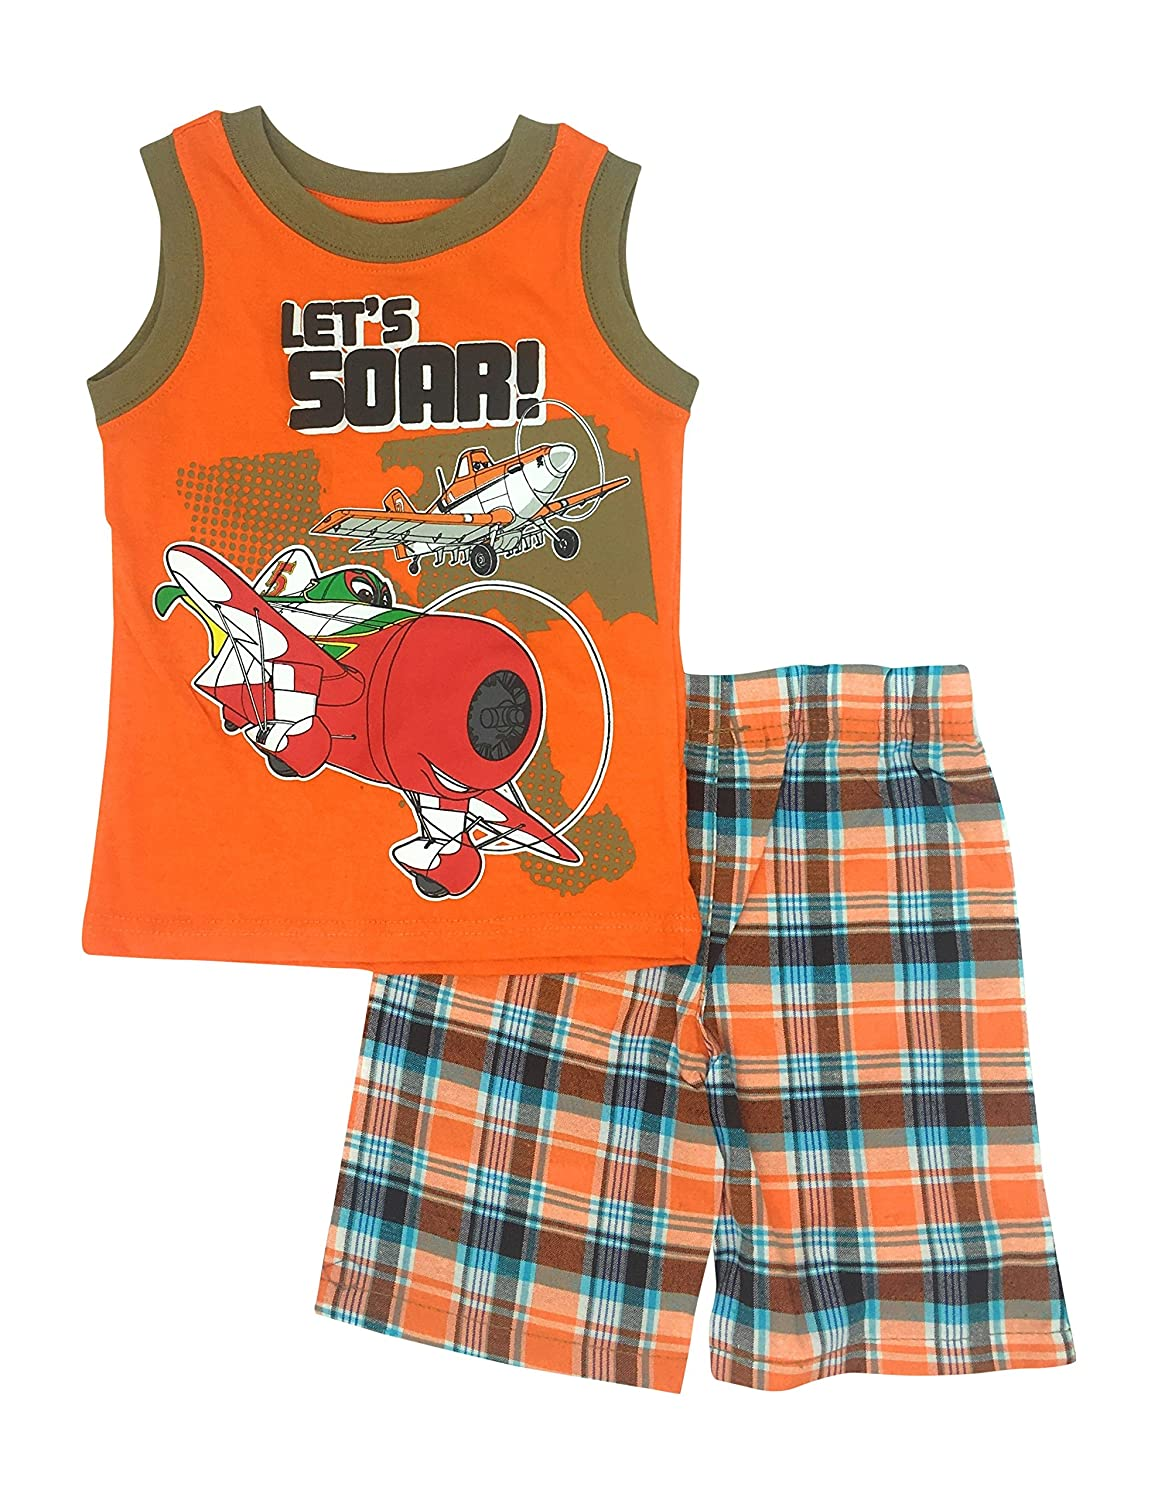 Toddlers Tank Muscle Short Set Sizes 2T-4T Disneys Planes Lets Soar 3T